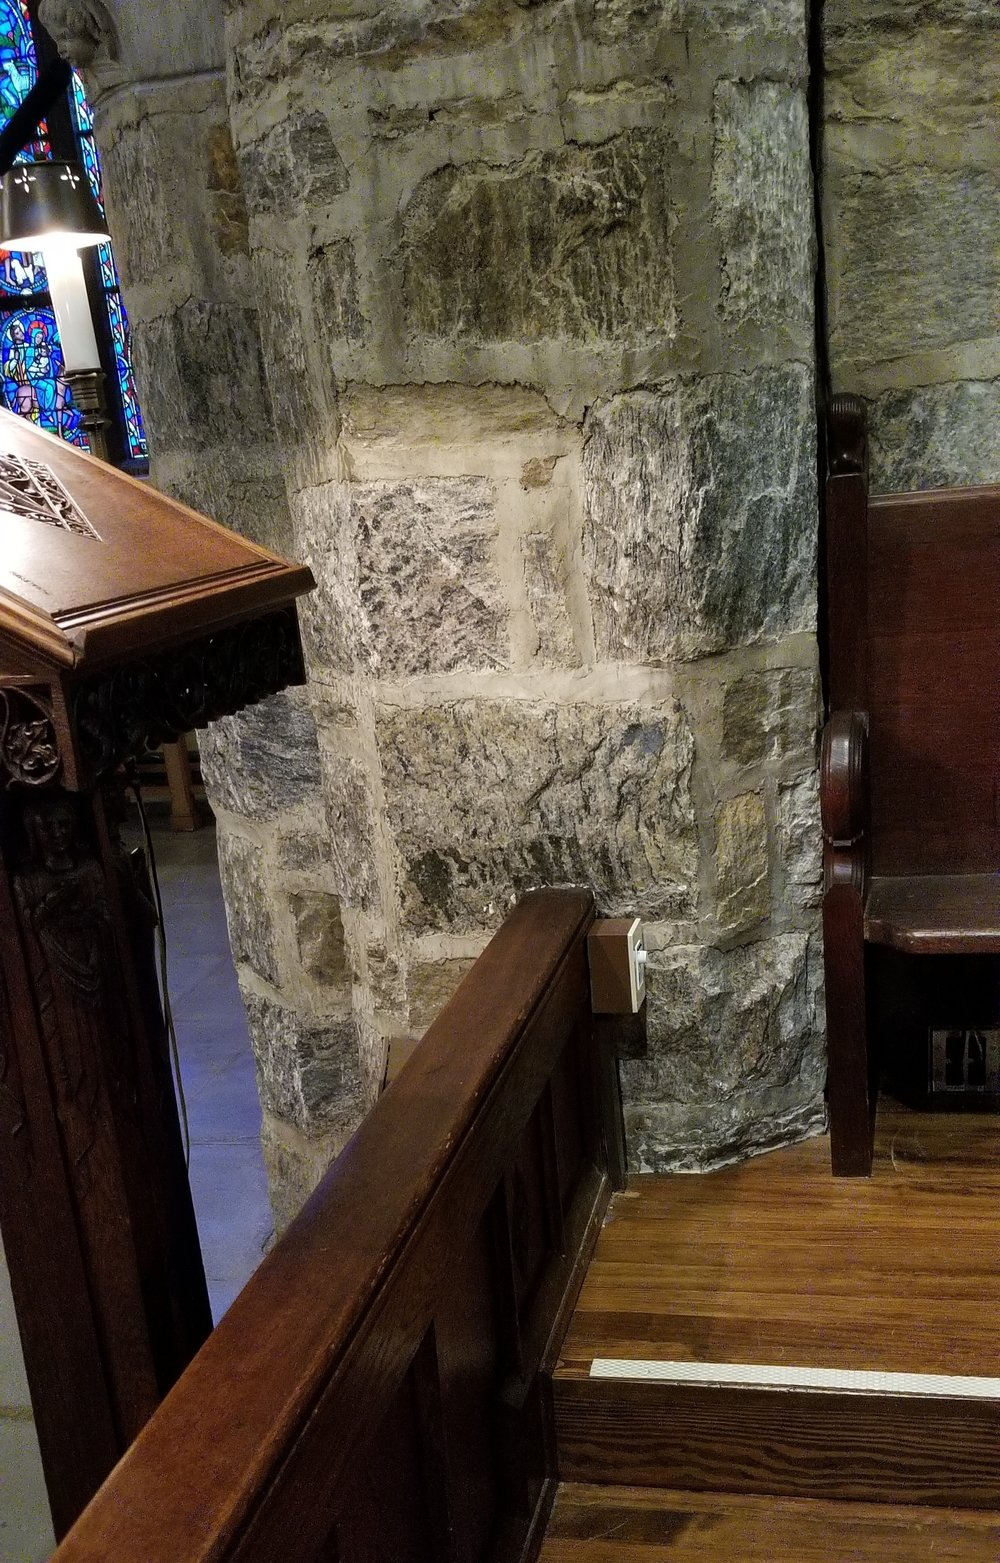 A Bluetooth receiver provides wireless audio connectivity from within the chancel.